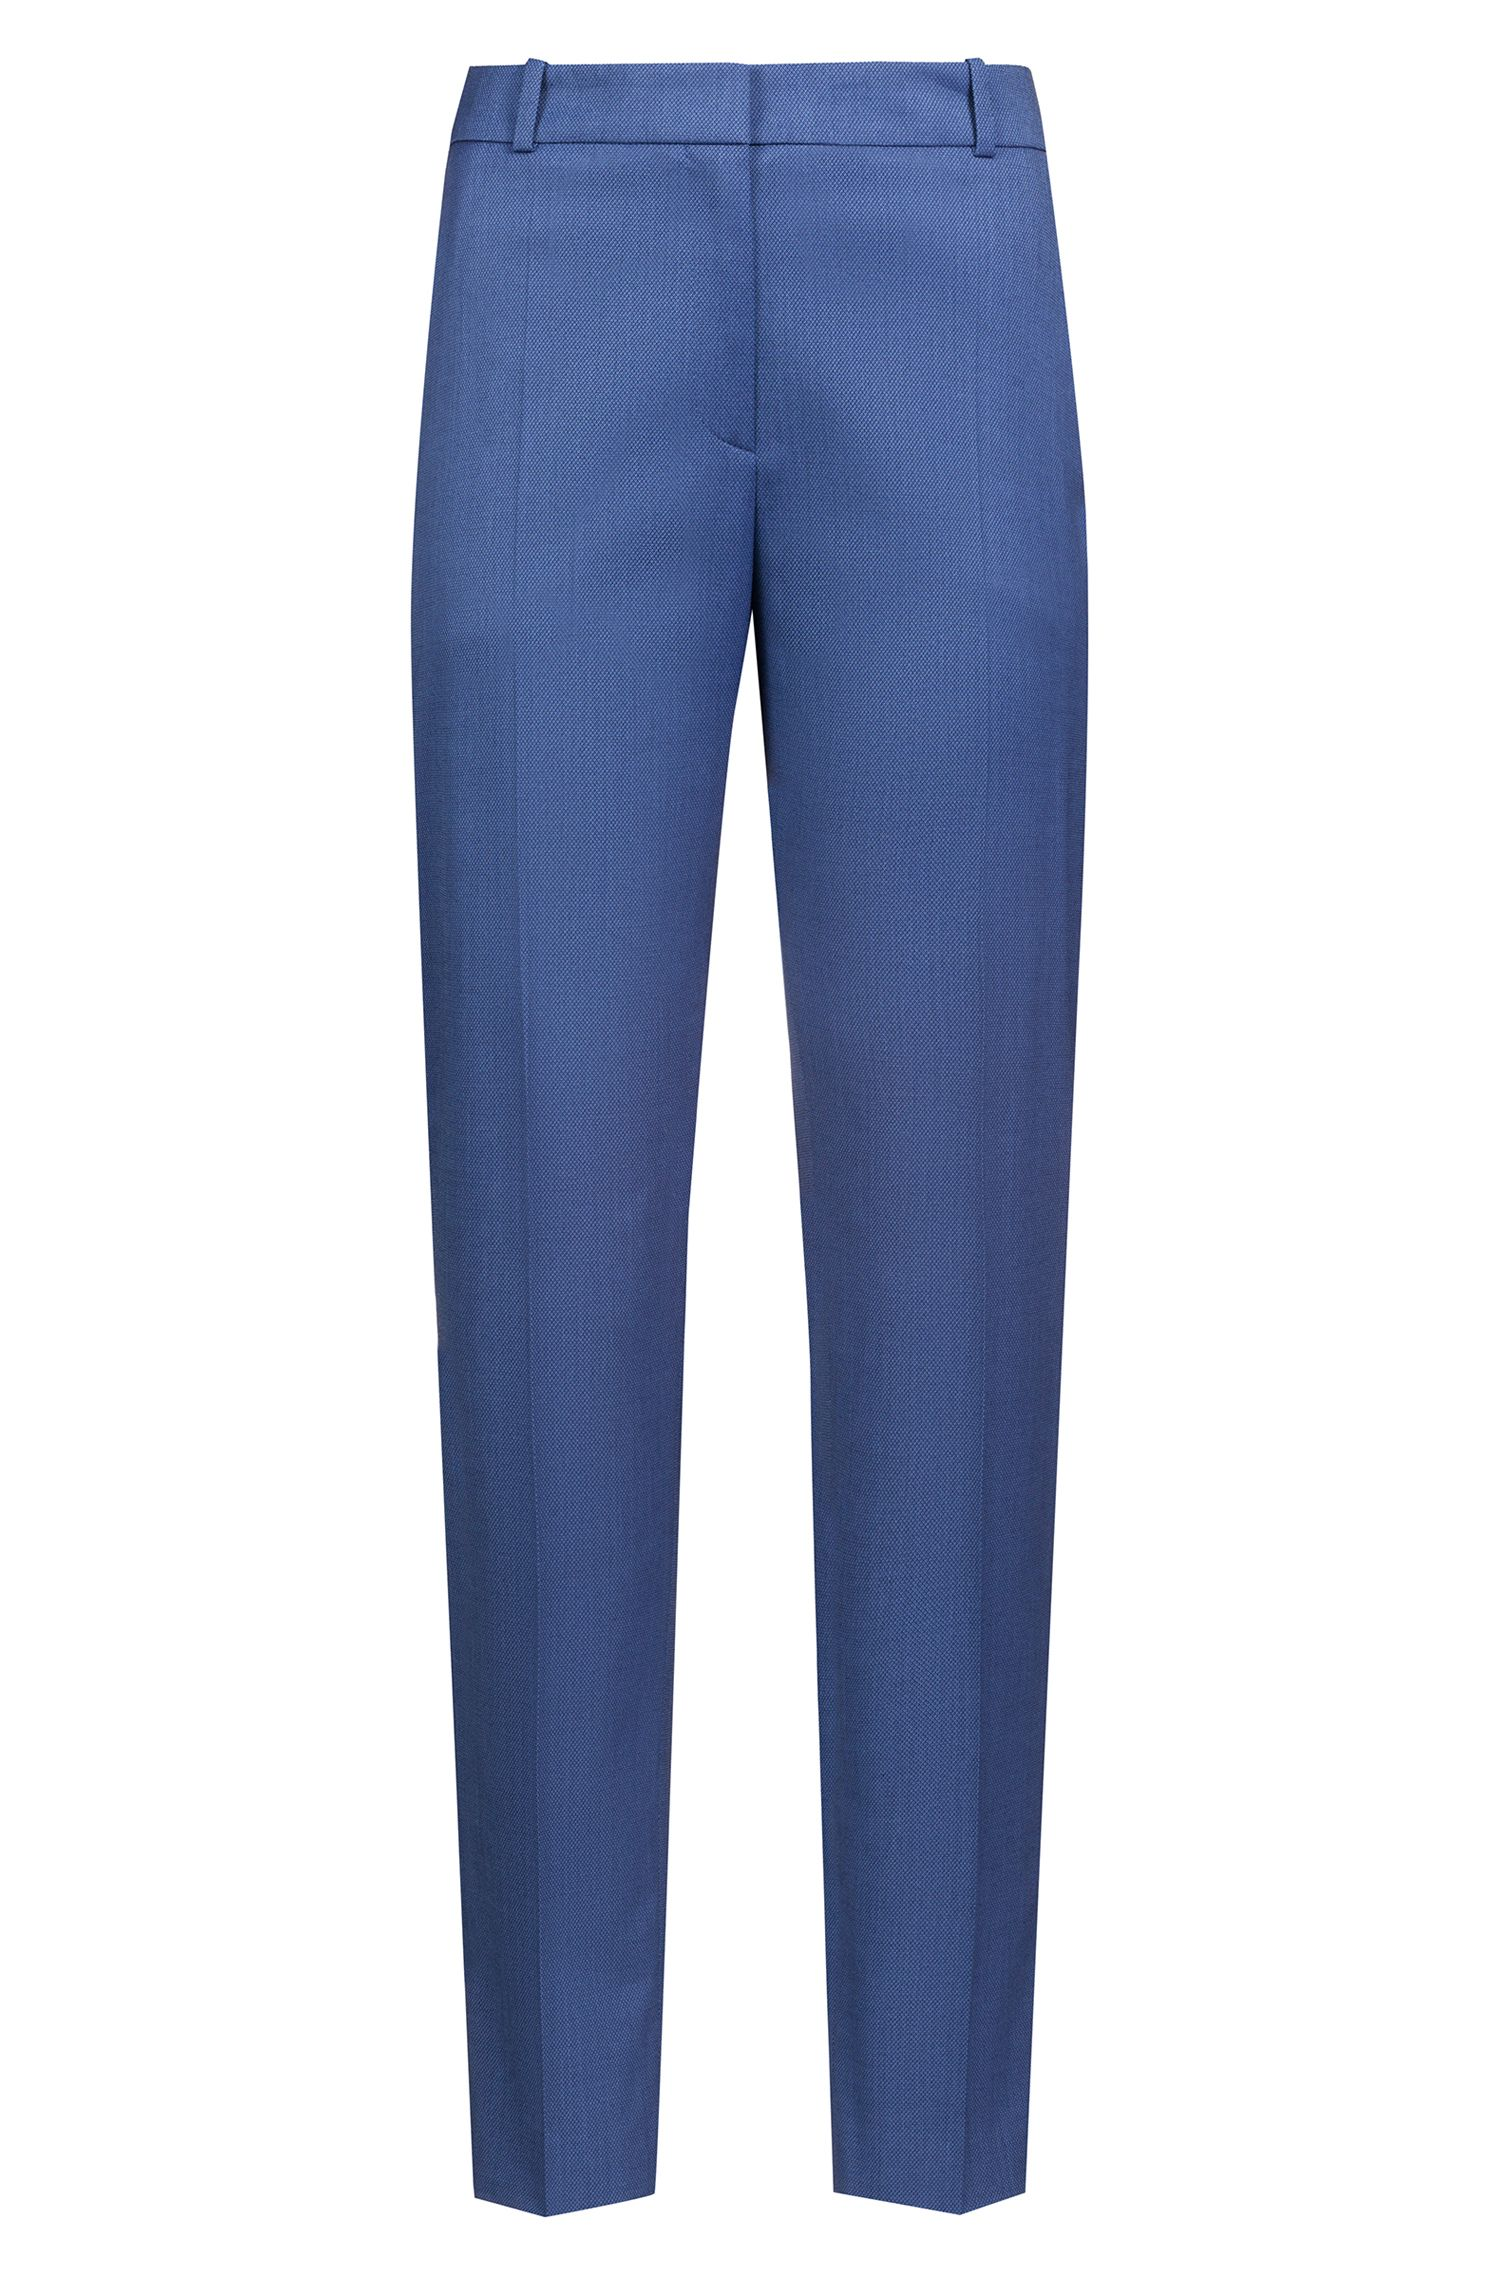 Cropped cigarette trousers in patterned stretch fabric, Patterned